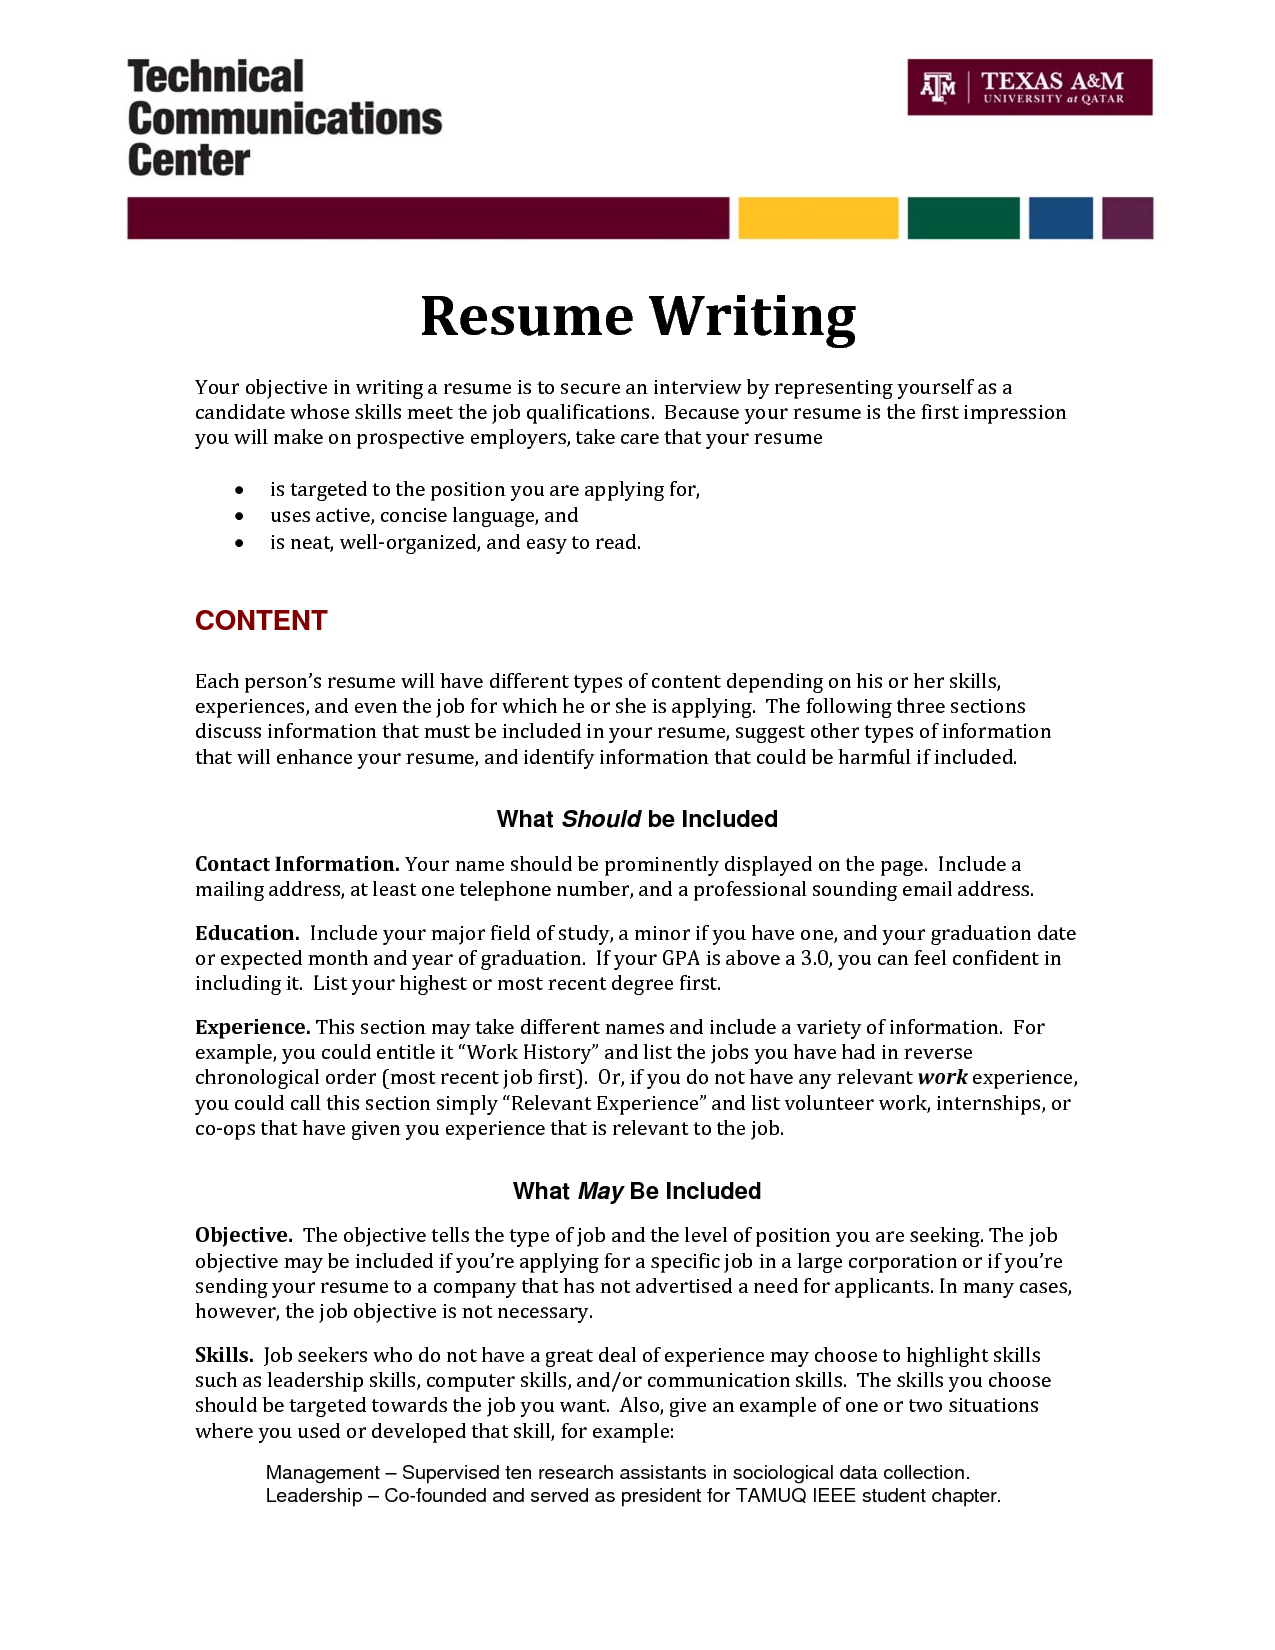 is an objective necessary on a resumes